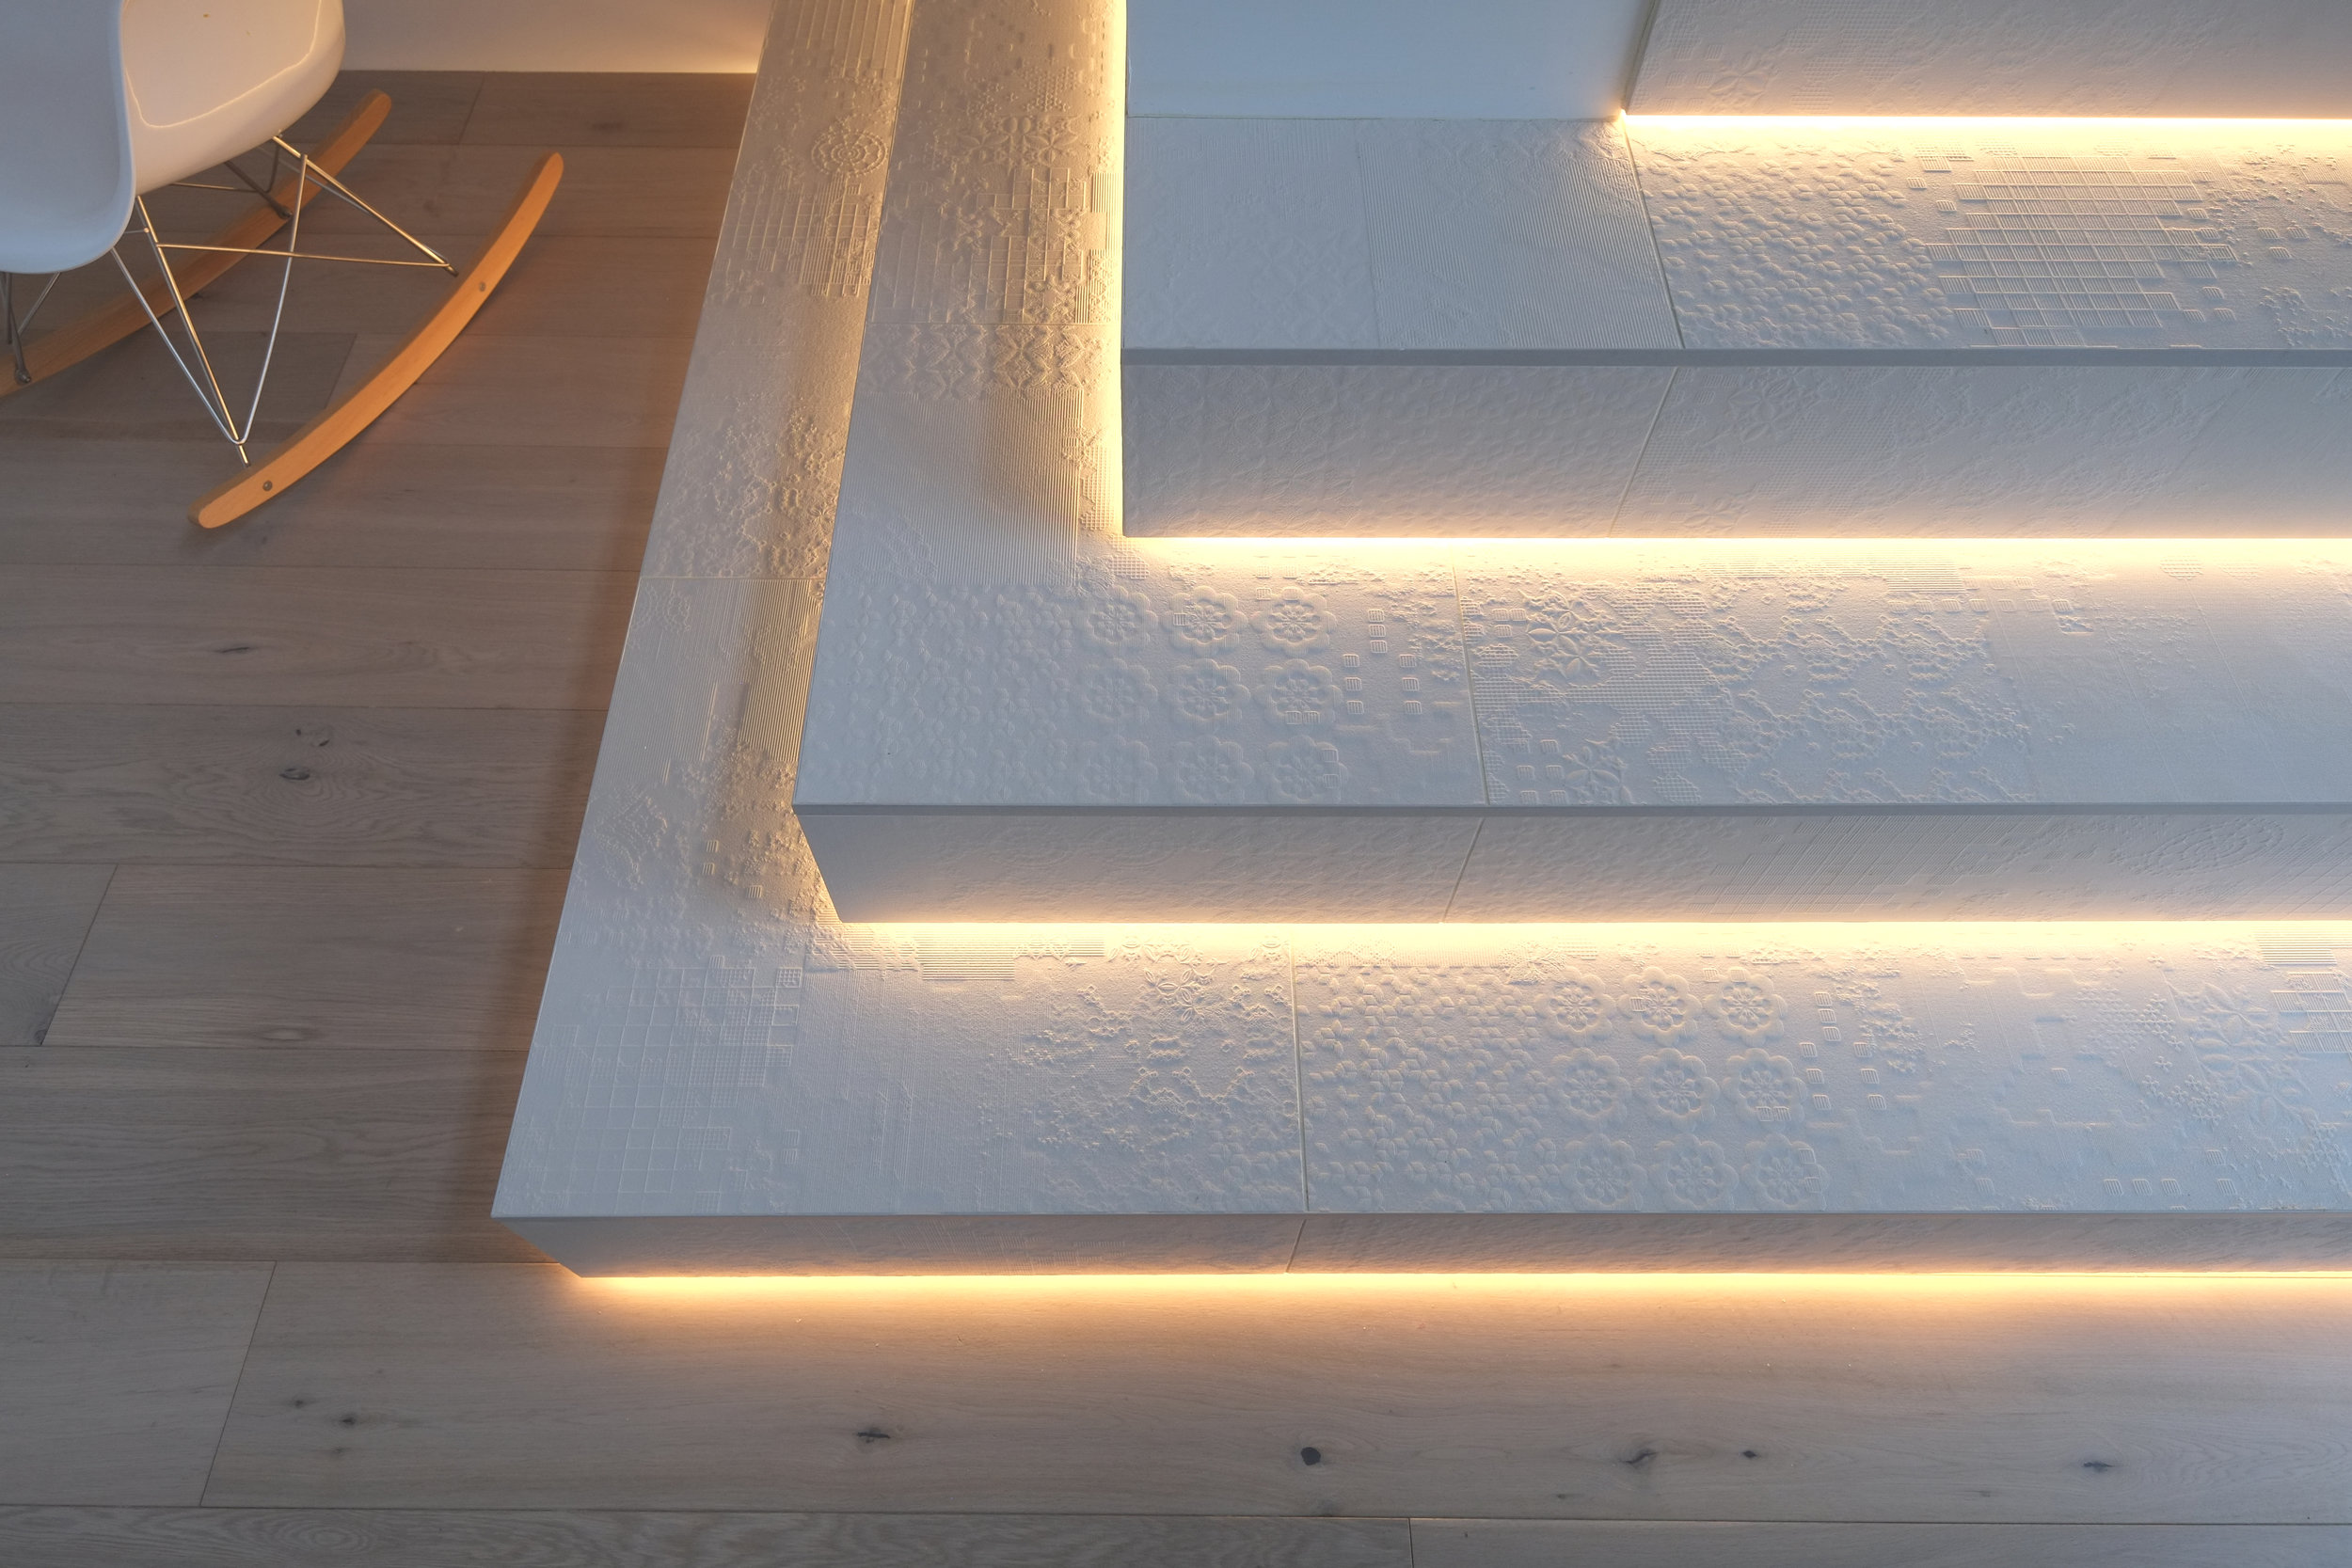 Architectural Elements - Porcelain is an excellent material for cladding staircases and architectural elements. We clad the first three steps of this staircase in 10mm Dechirer 1200x1200 by Mutina. A tile characterised by the pattern and depth of texture which is highlighted further by the recessed LED lighting. We supplied the technical drawings as well as the installation.Tile featured: Mutina Dechirer